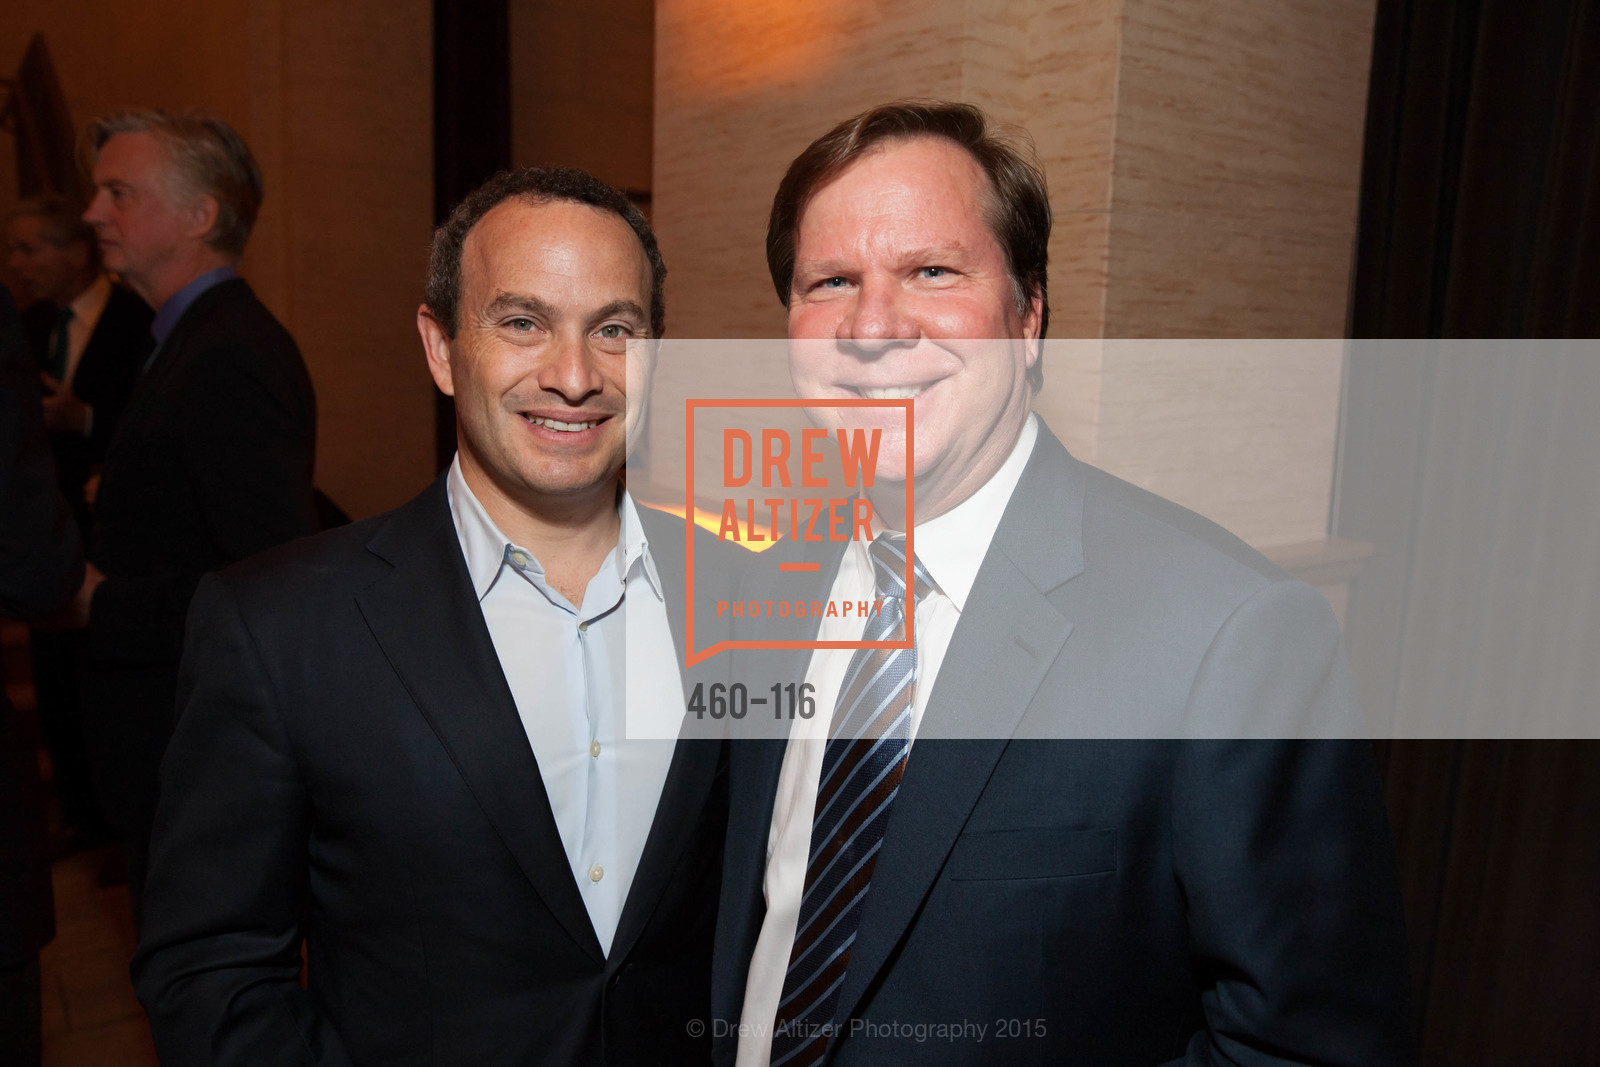 Evan Marwell, Hank Miller, Aspire Public Schools 2nd Annual Gala, Bently Reserve, May 20th, 2015,Drew Altizer, Drew Altizer Photography, full-service agency, private events, San Francisco photographer, photographer california